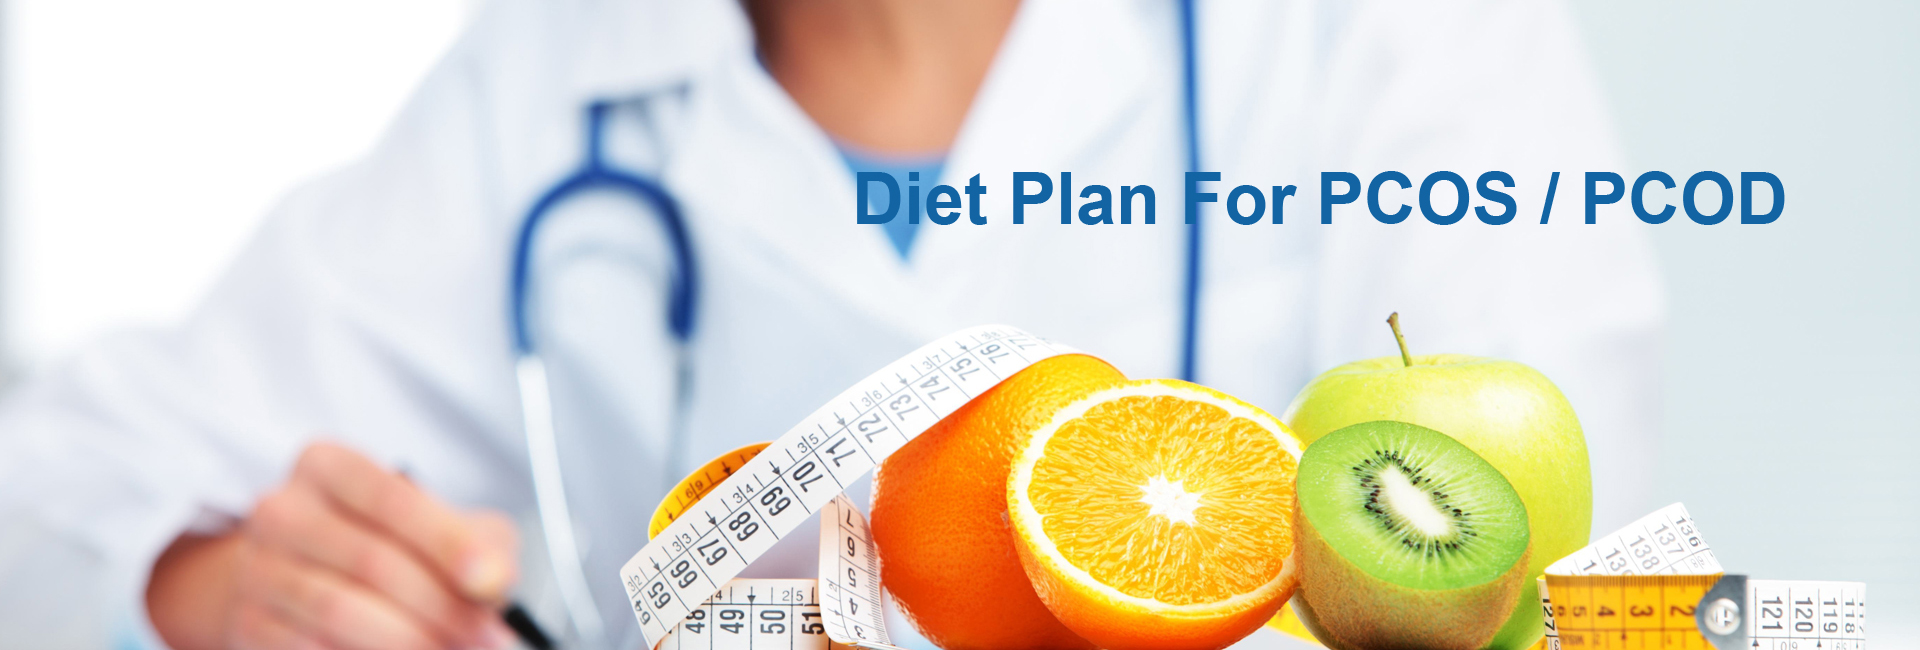 Diet Plan For PCOS / PCOD In Chandler